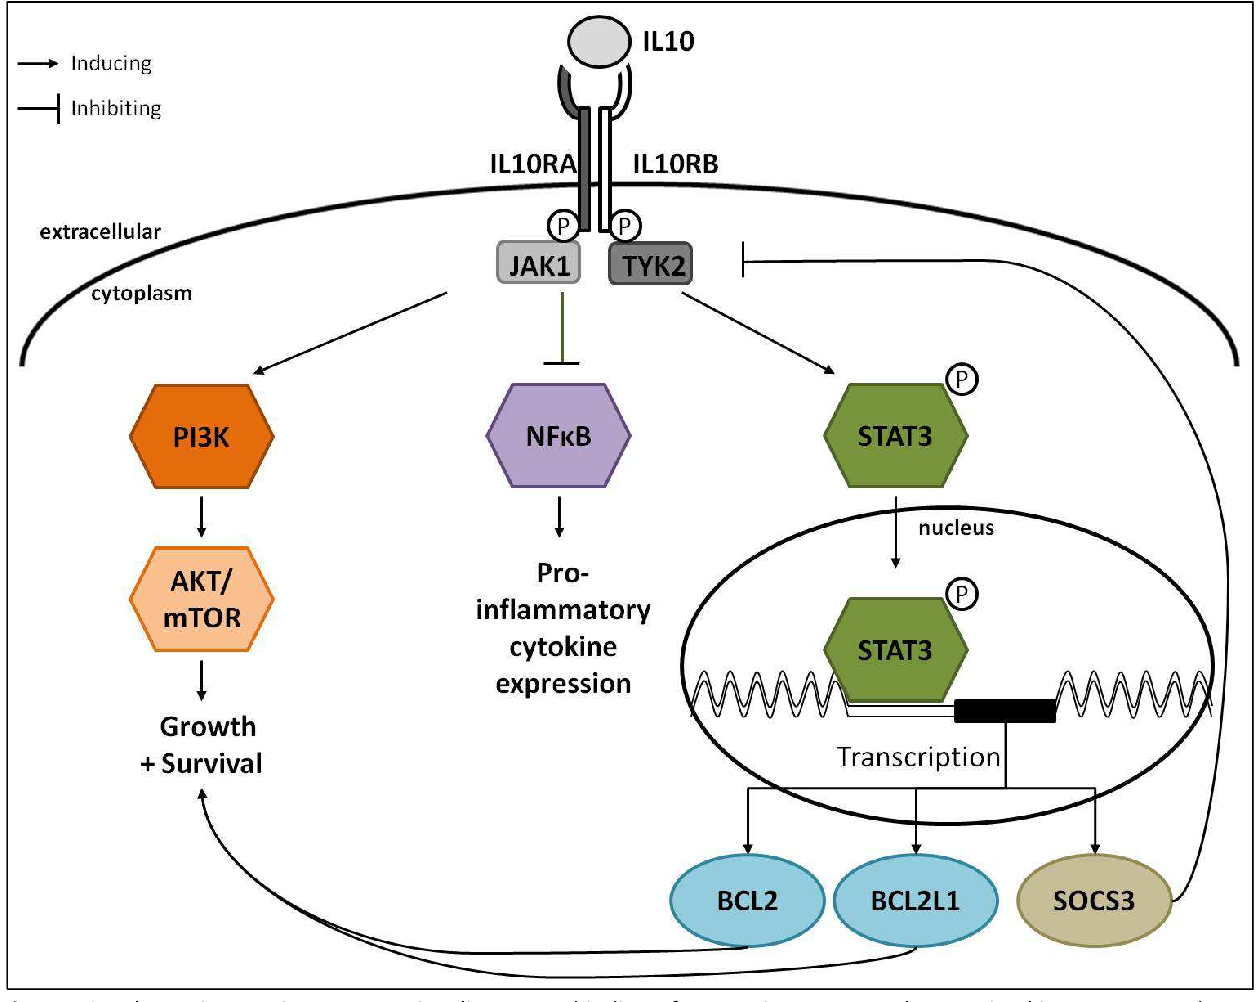 Figure 46: Schematic overview on IL10 signaling. Upon binding of IL10 to its receptor, the tyrosine kinases JAK1 and TYK2 become phosphorylated and activate STAT3, which translocates into the nucleus where it induces the expression of several genes including the anti-apoptotic genes BCL2 and BCL2L1 as well as SOCS3 which is a negative regulator of the IL10 signaling. IL10 signaling inhibits NFκB leading subsequently to downregulation of pro-inflammatory cytokines. Furthermore, the PI3K-Akt pathway becomes activated inducing the growth and survival of the cells.